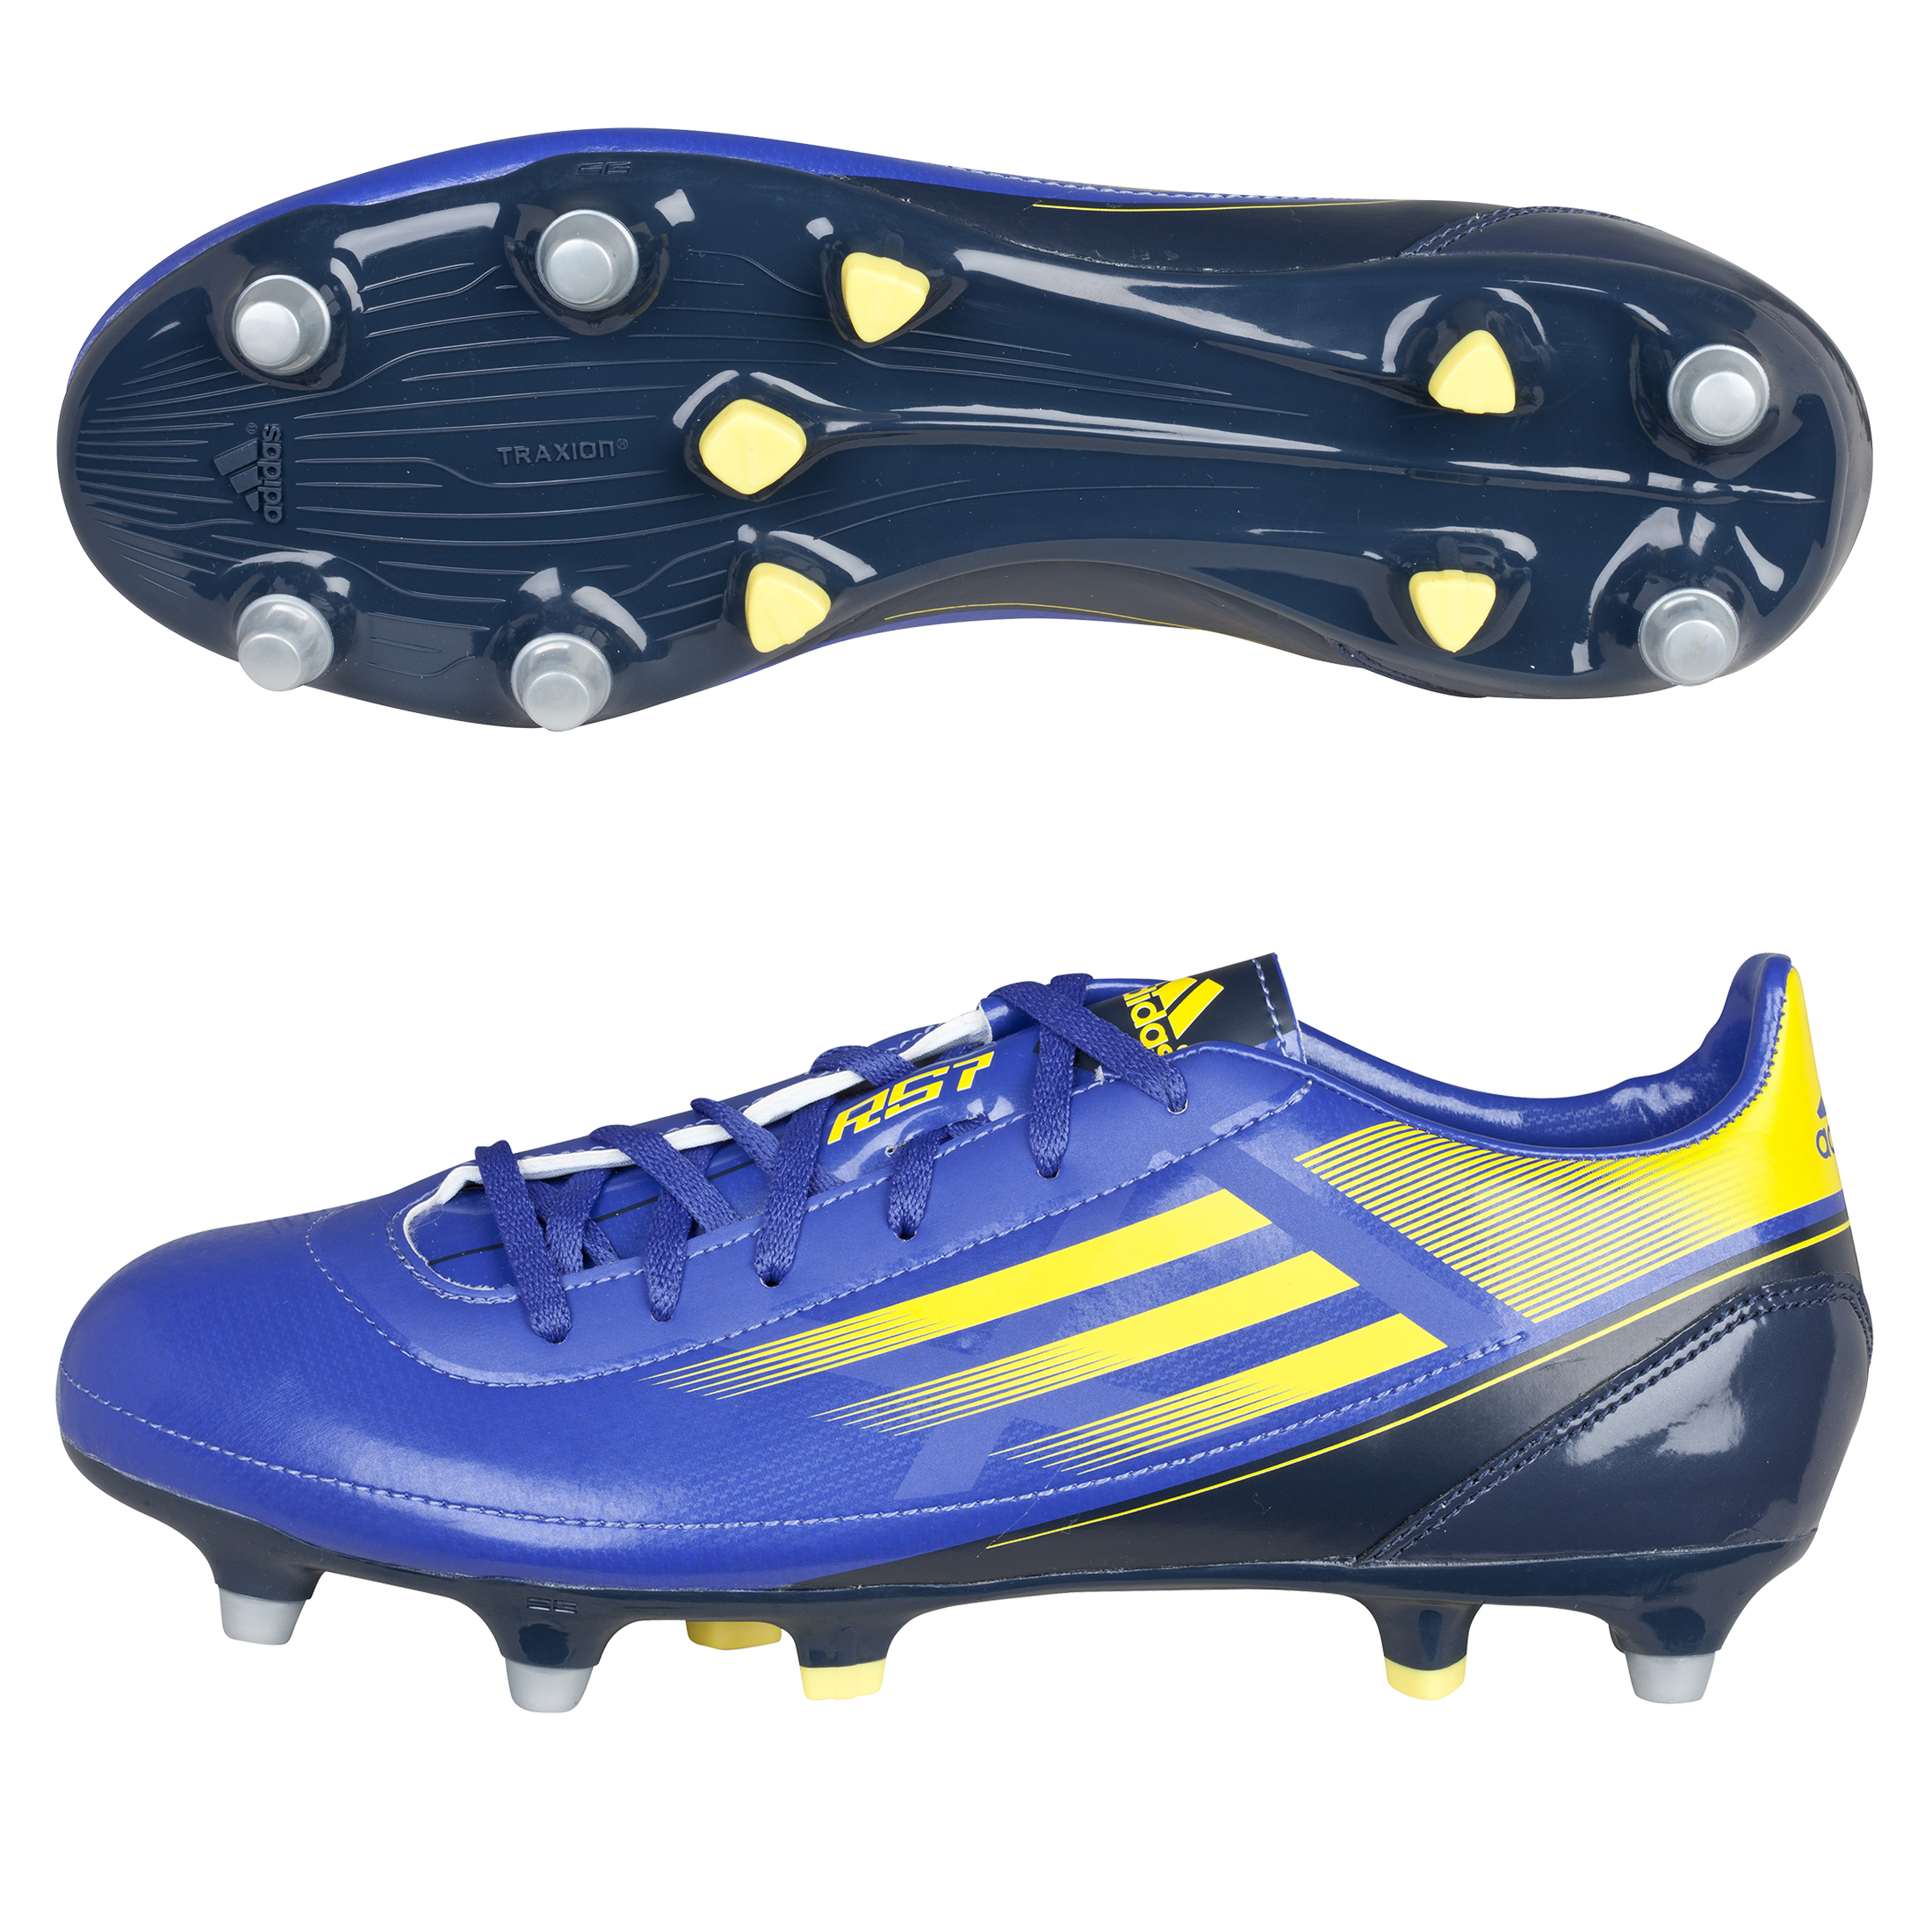 adidas RS7 TRX III Soft Ground Rugby Boots - Blaze Blue Met/Vivid Yellow/Urban Sky